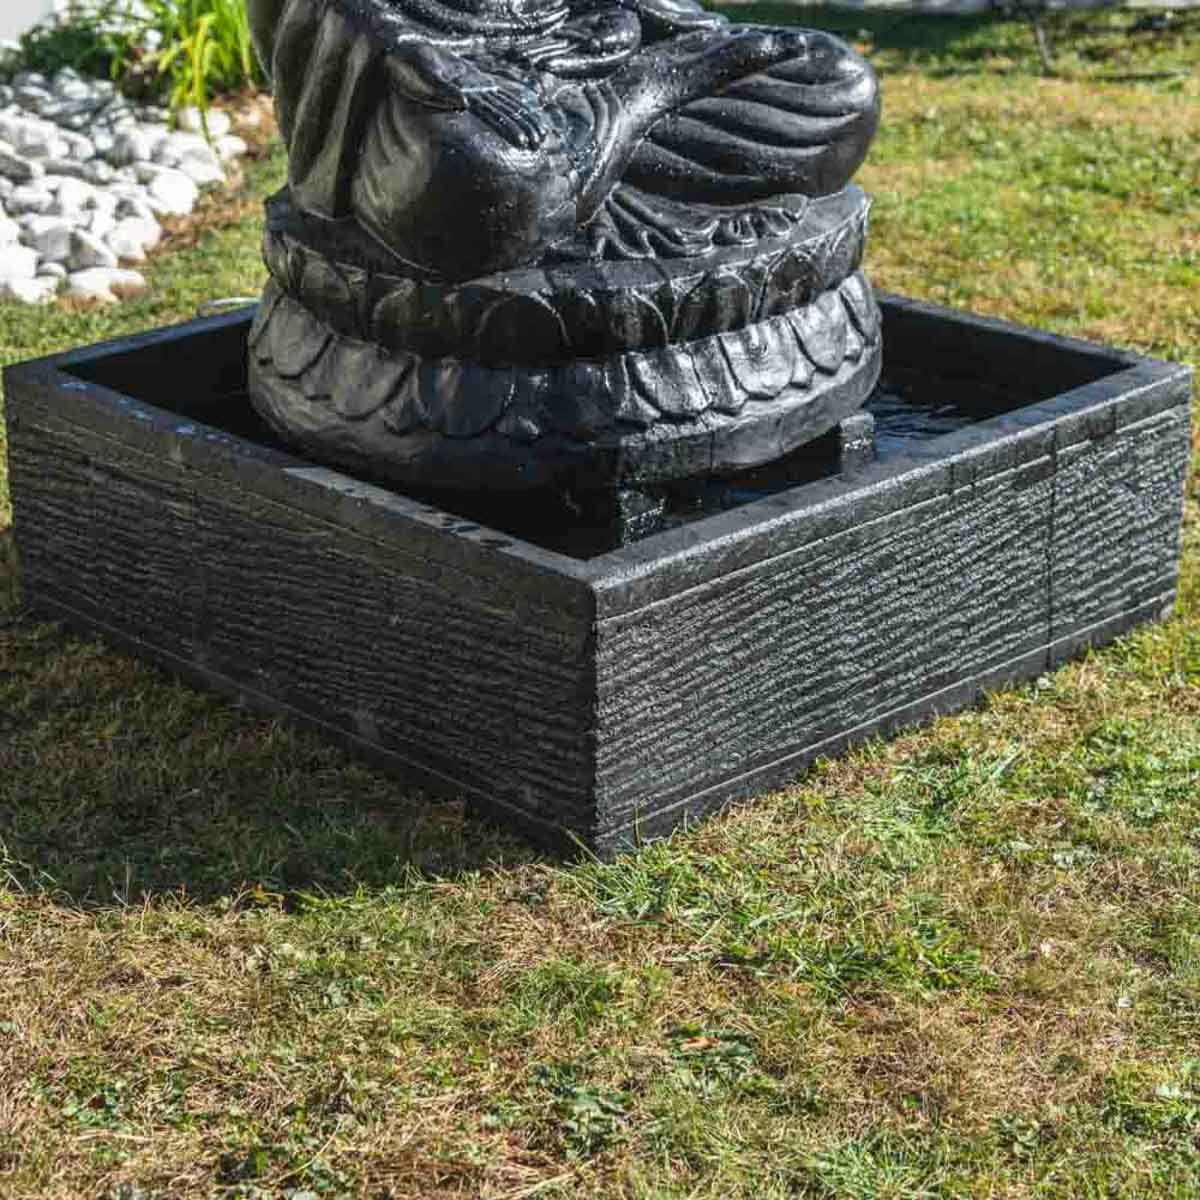 Fontaine de jardin fontaine avec bassin bouddha assis patin noir 1 m 20 for Decoration jardin bouddha